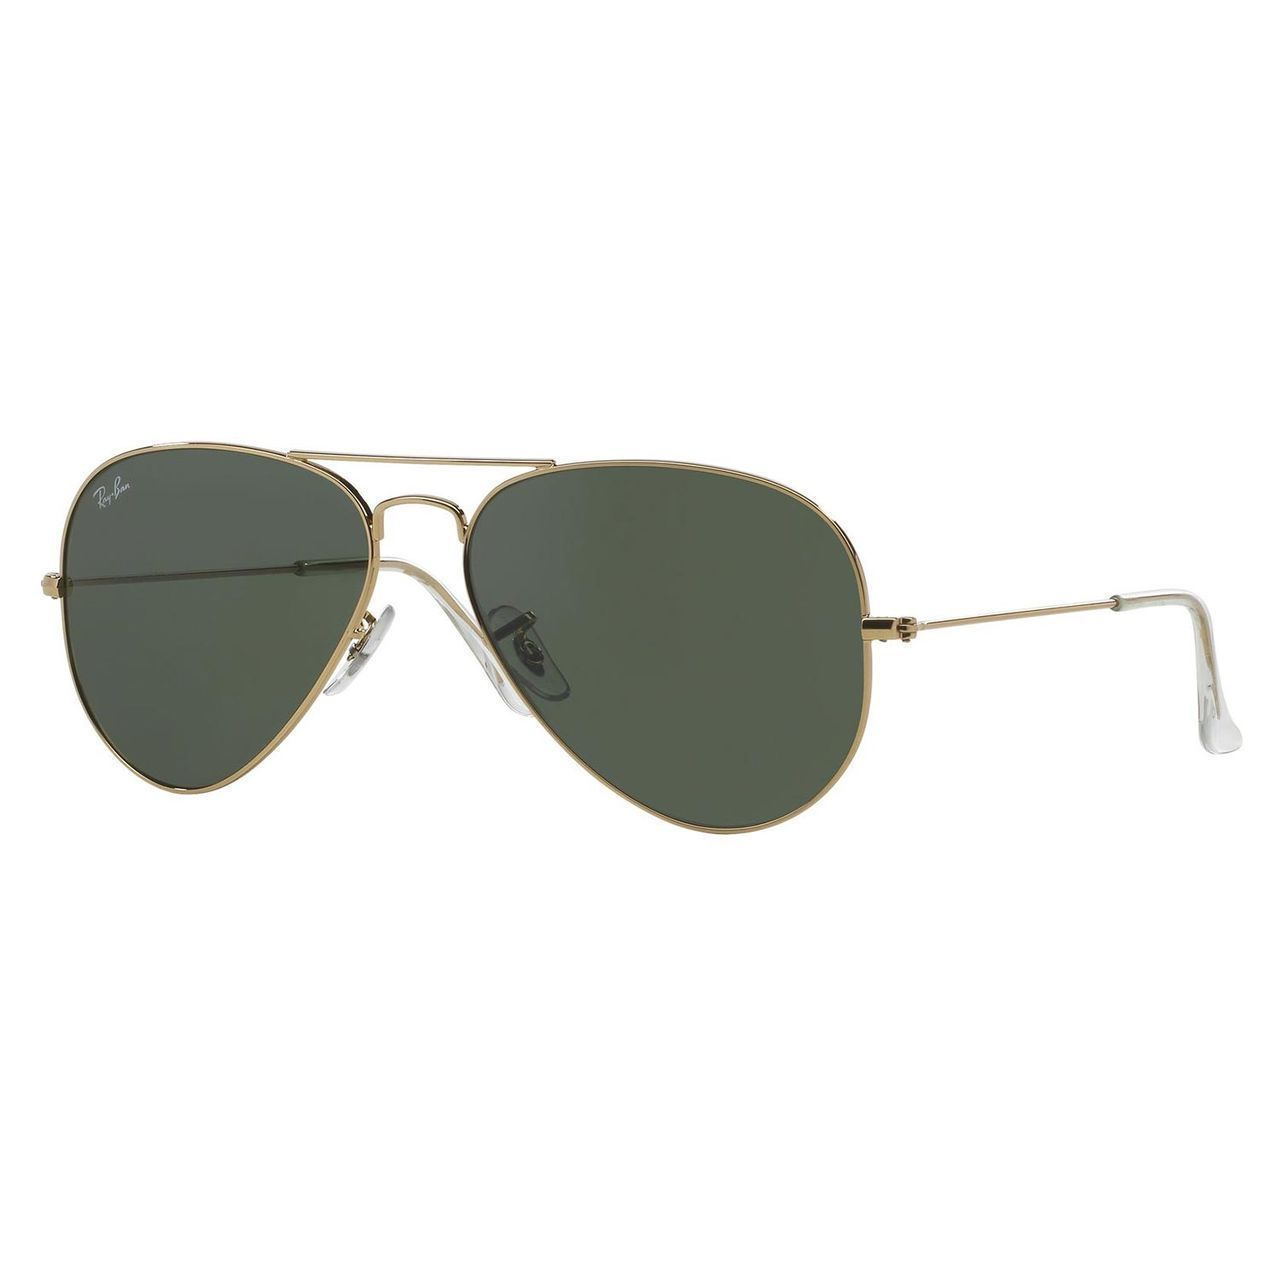 Ray-Ban Aviator RB3025 Unisex Gold Frame Green Lens Sungl...